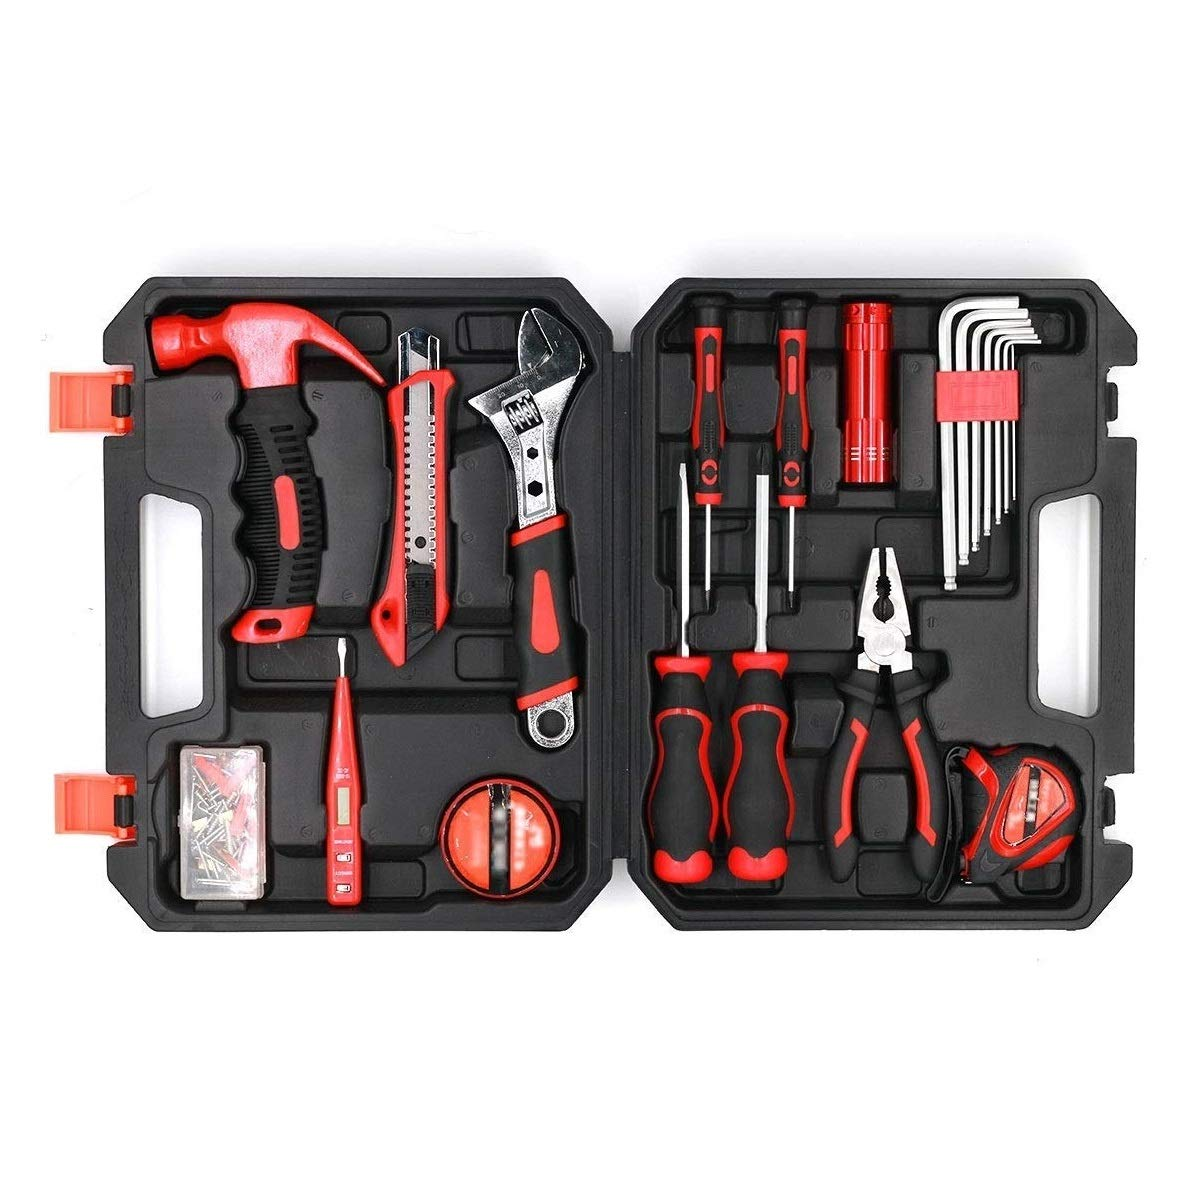 41-Piece BHTK001 Tool Set General Household Hand Tool Kit with Plastic Toolbox Storage Case